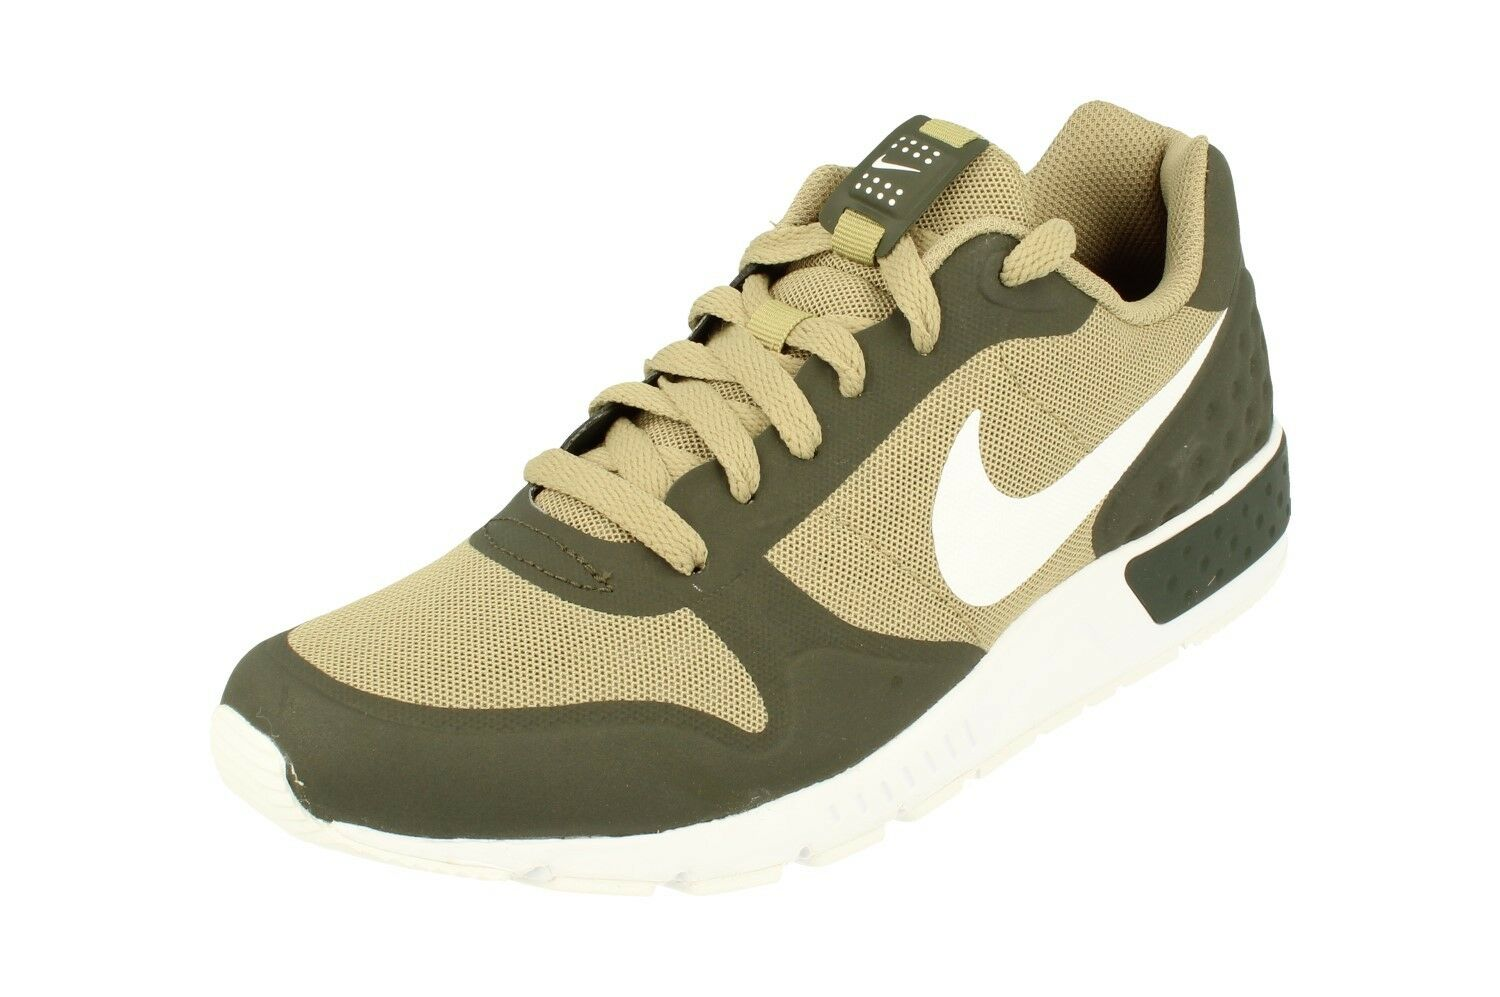 Nike Nightgazer Lw Se Mens Running Trainers 902818 Sneakers shoes 200